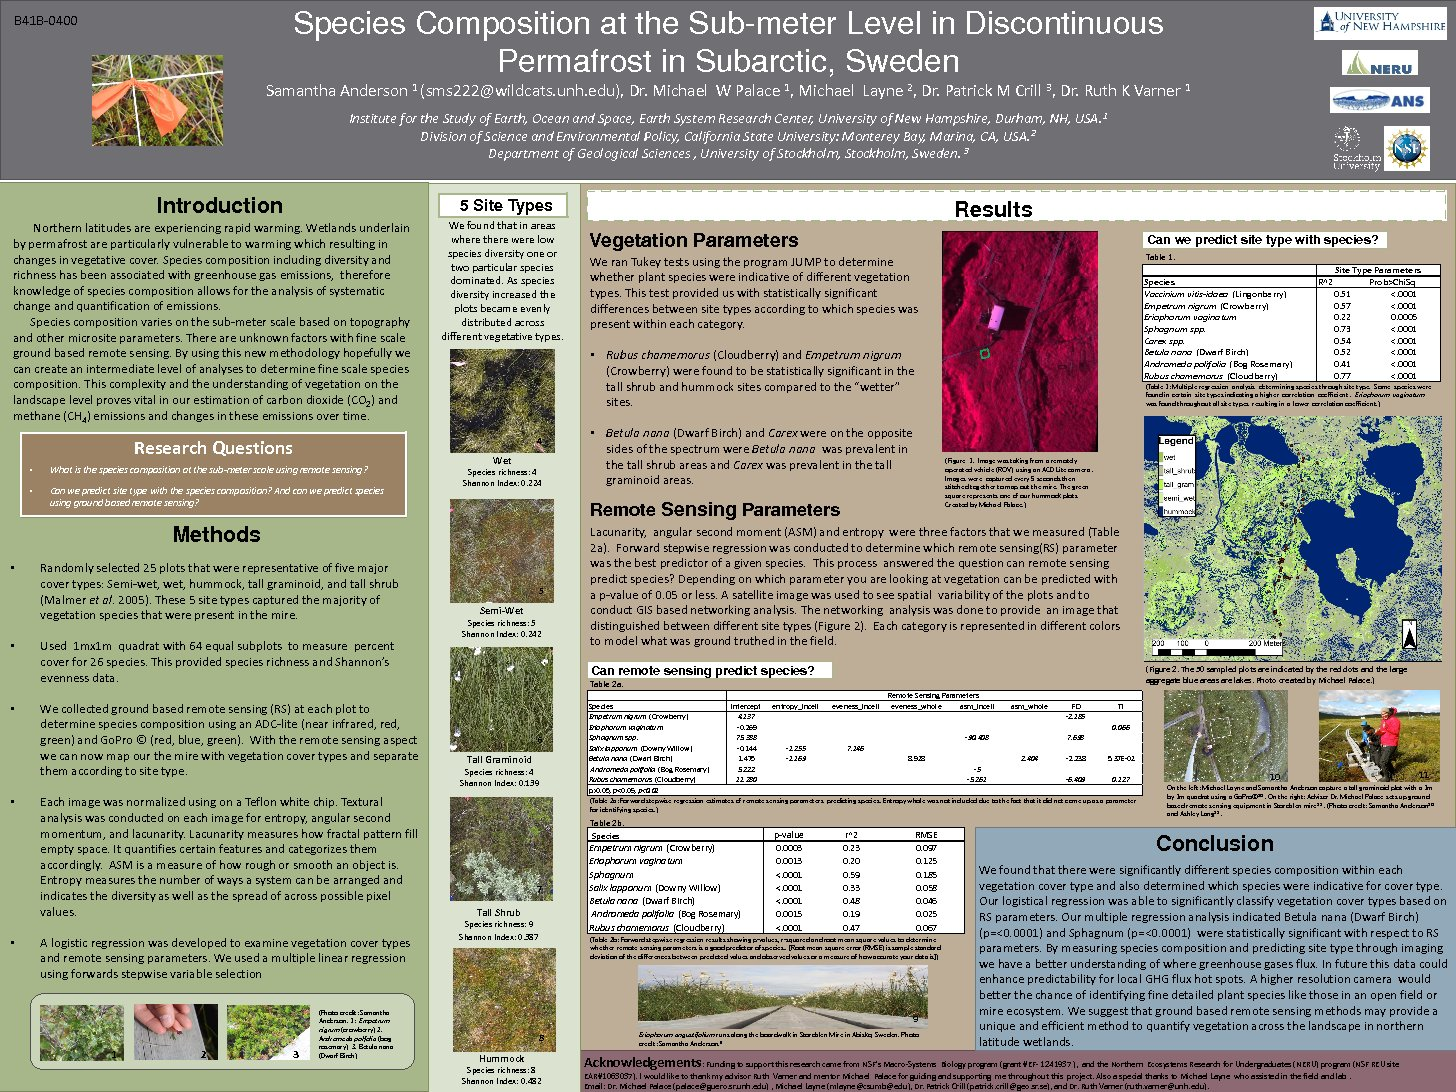 Species Composition At The Sub Meter Level In Discontinuous Permafrost In Subarctic Sweden by sms222